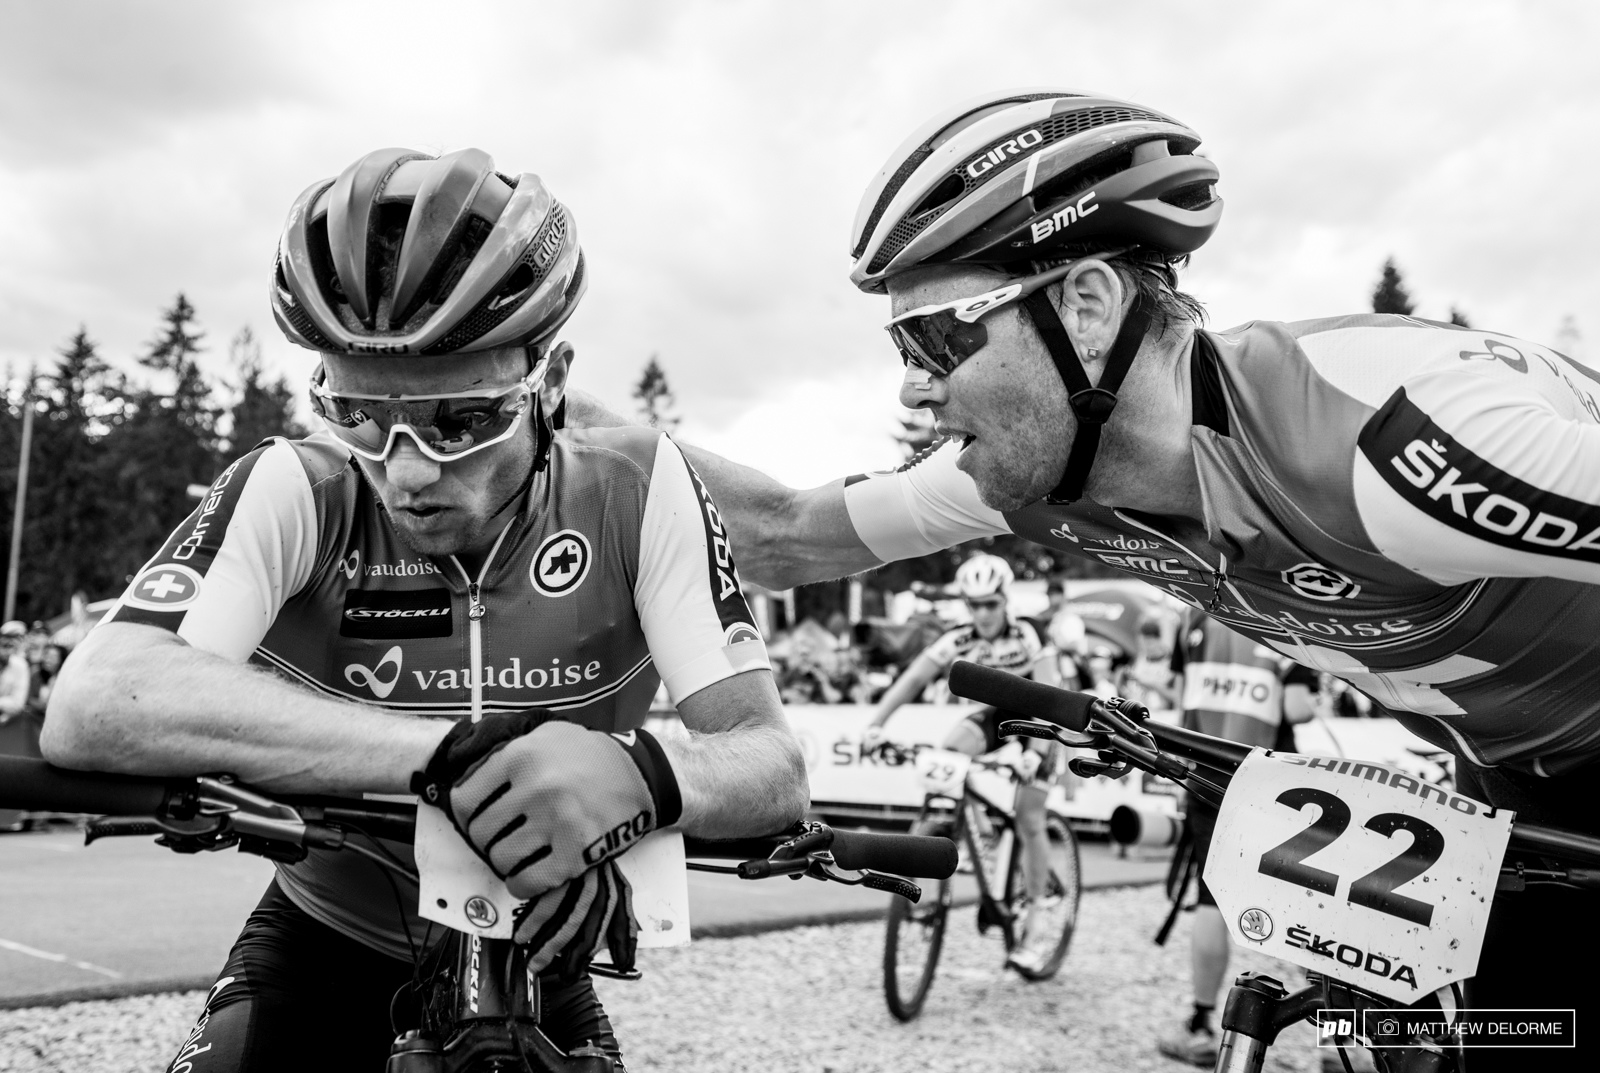 Brothers are always there with a kind word at race end.